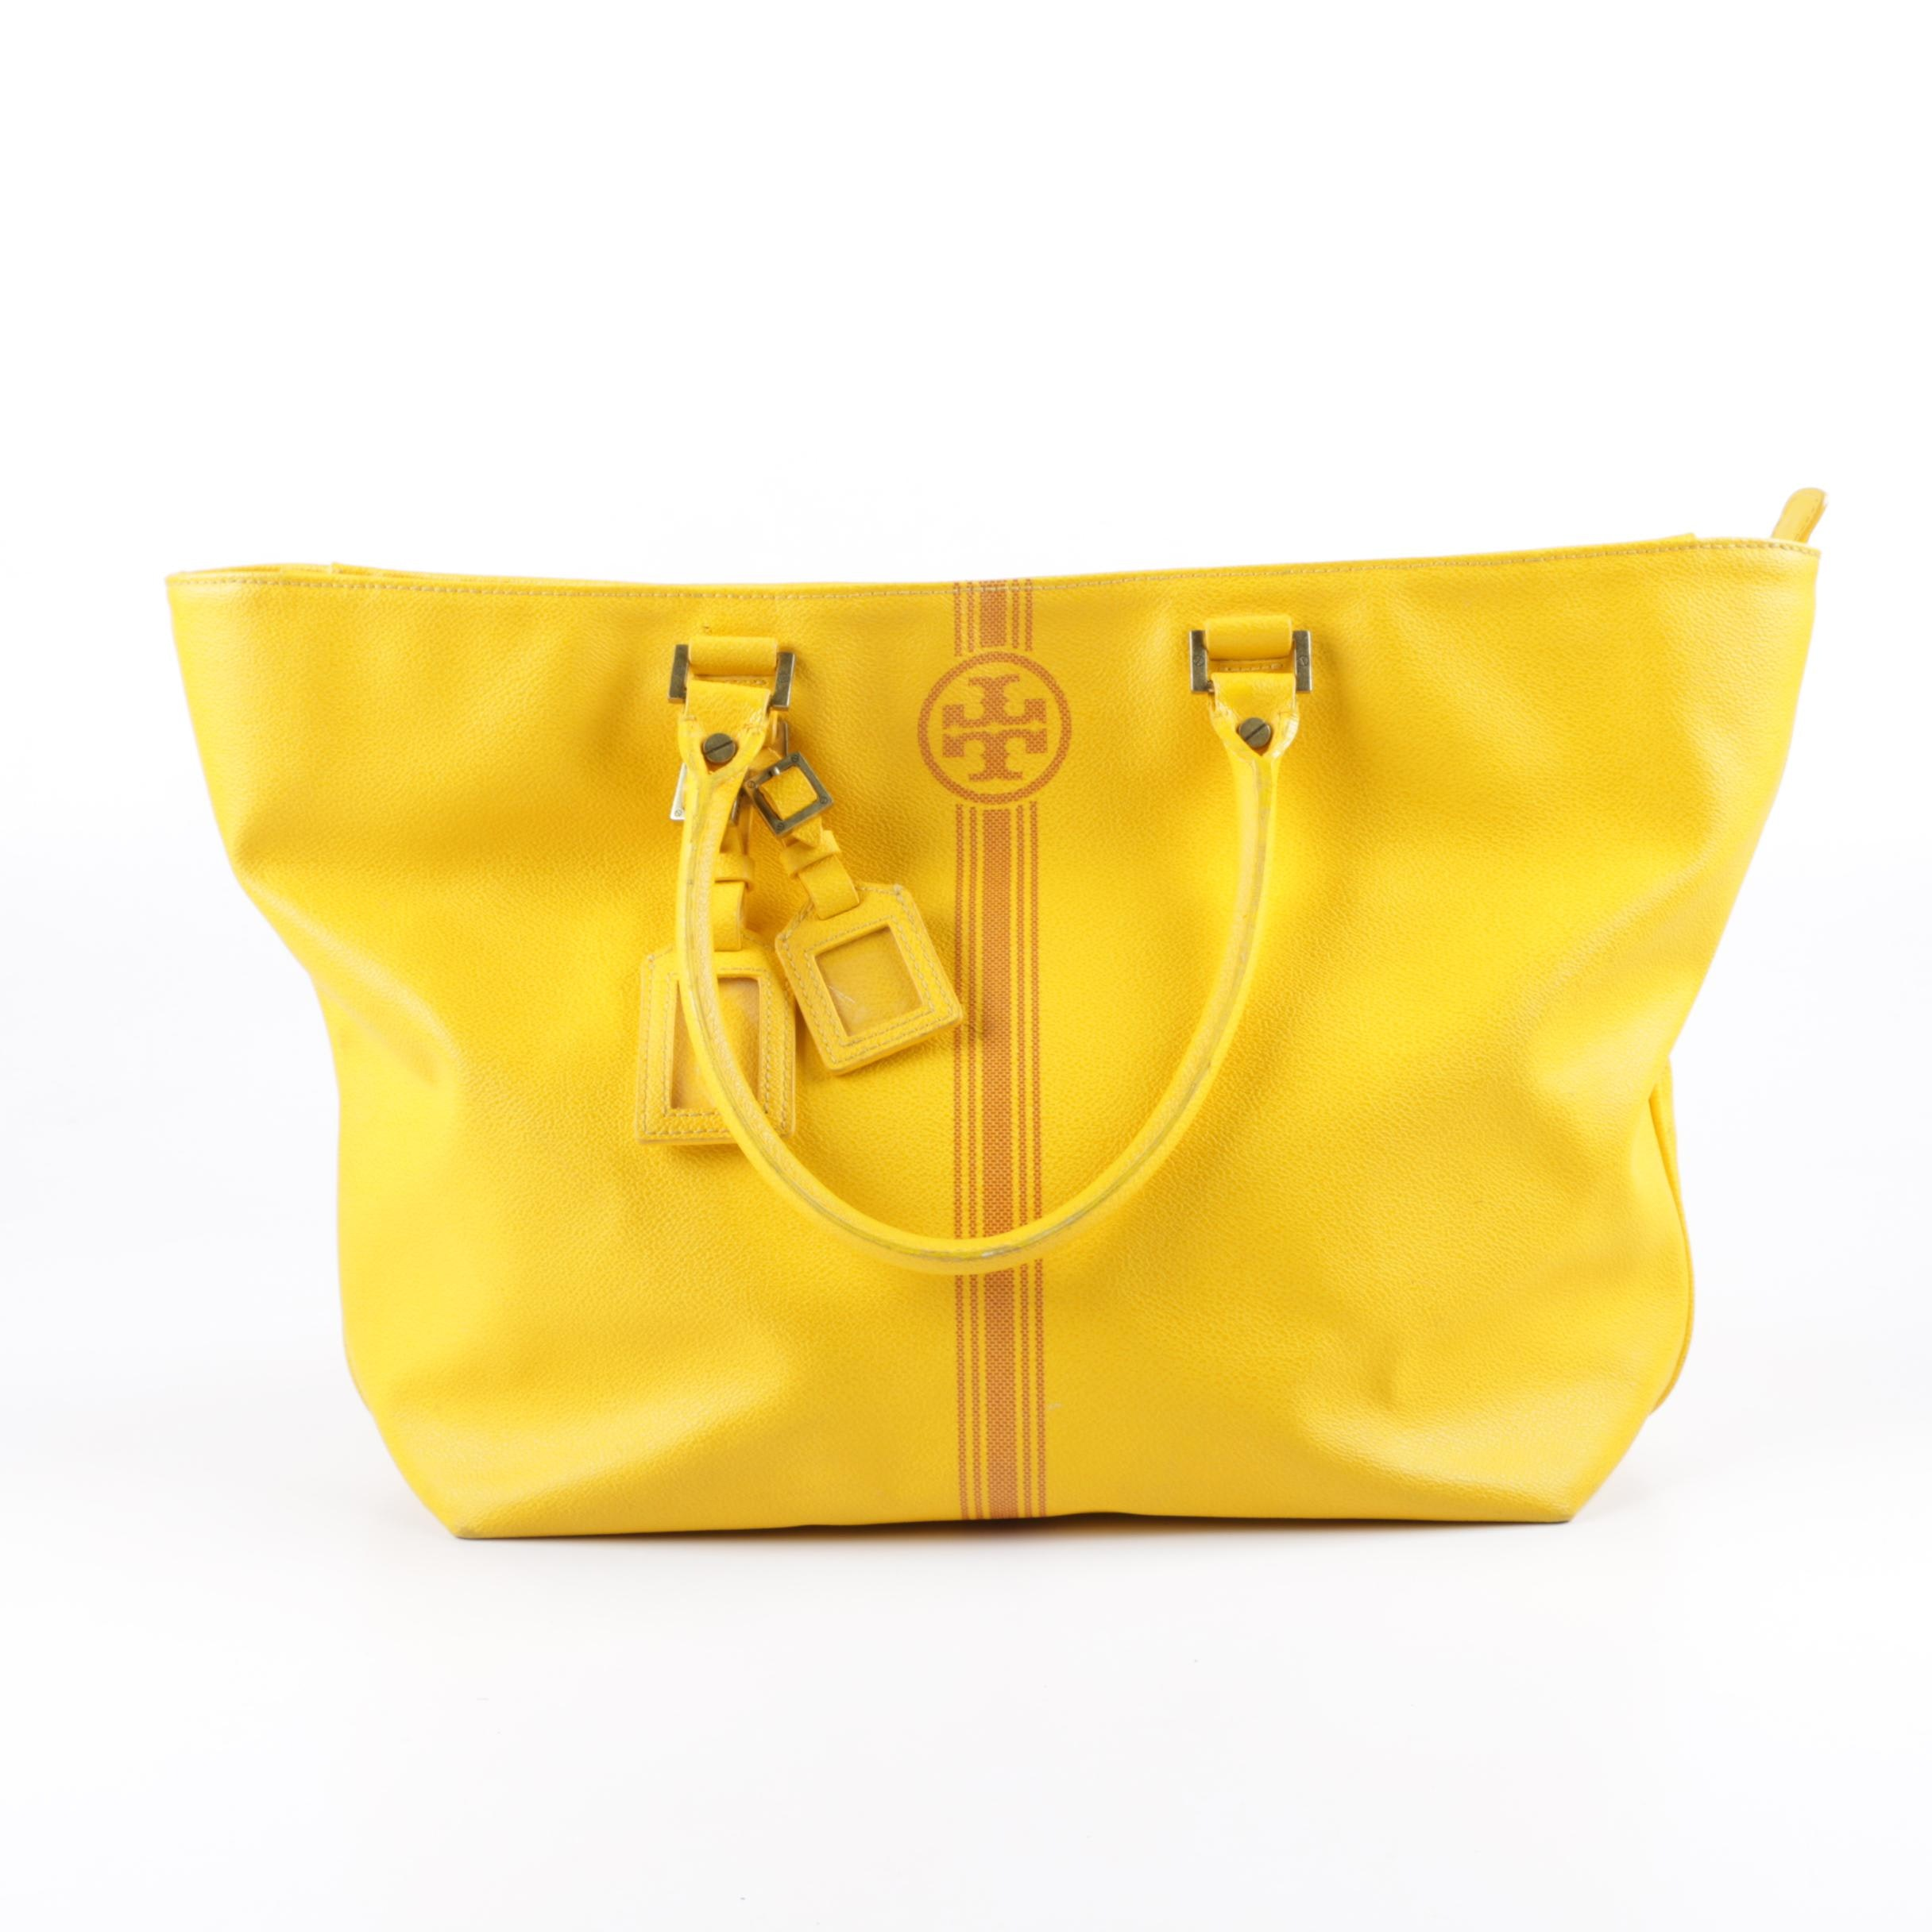 Tory Burch Roslyn Yellow Pebbled Leather Tote